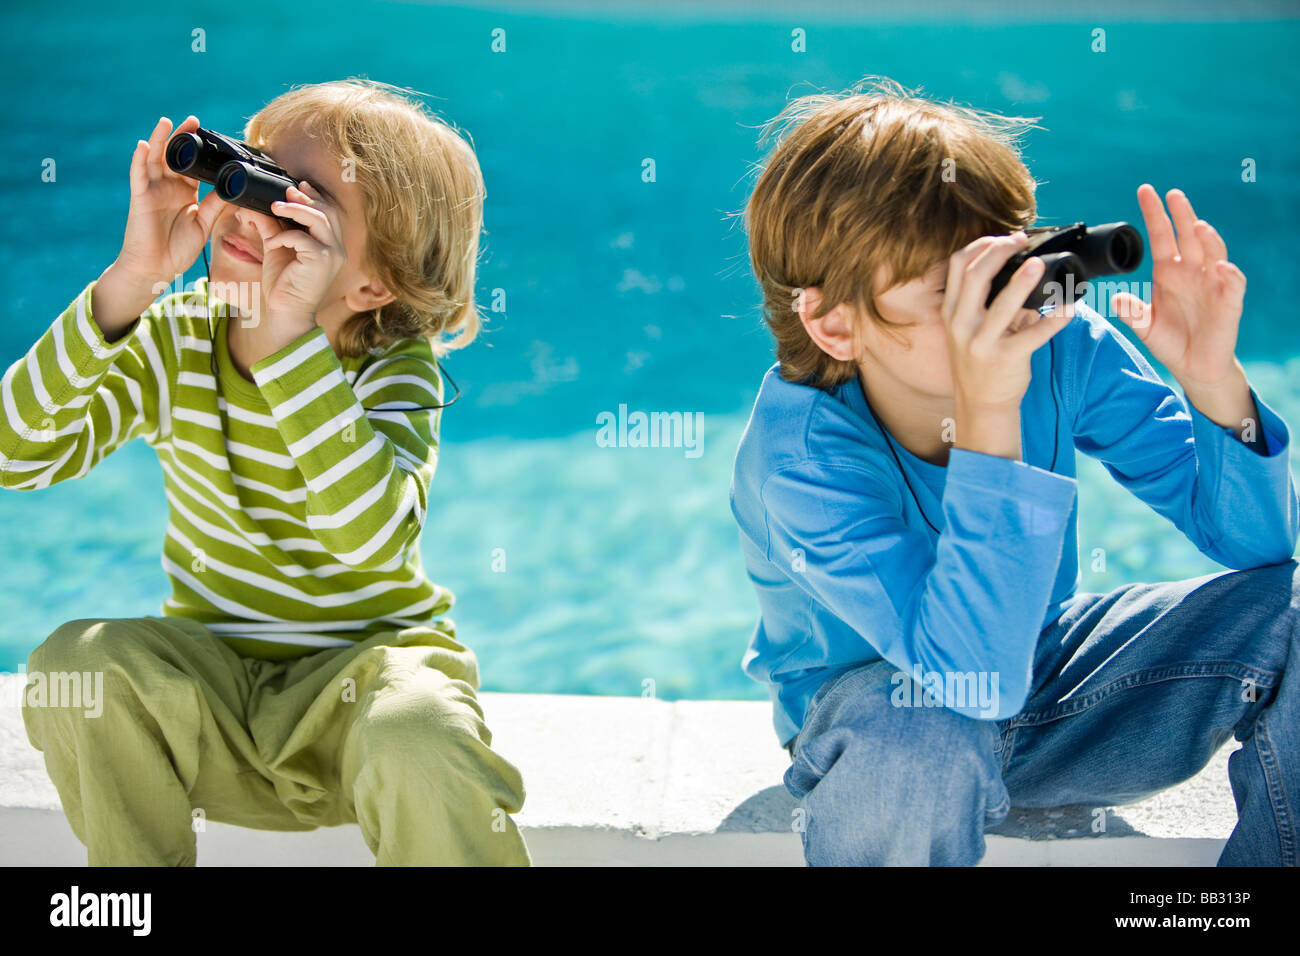 Two boys looking through binoculars at the poolside - Stock Image